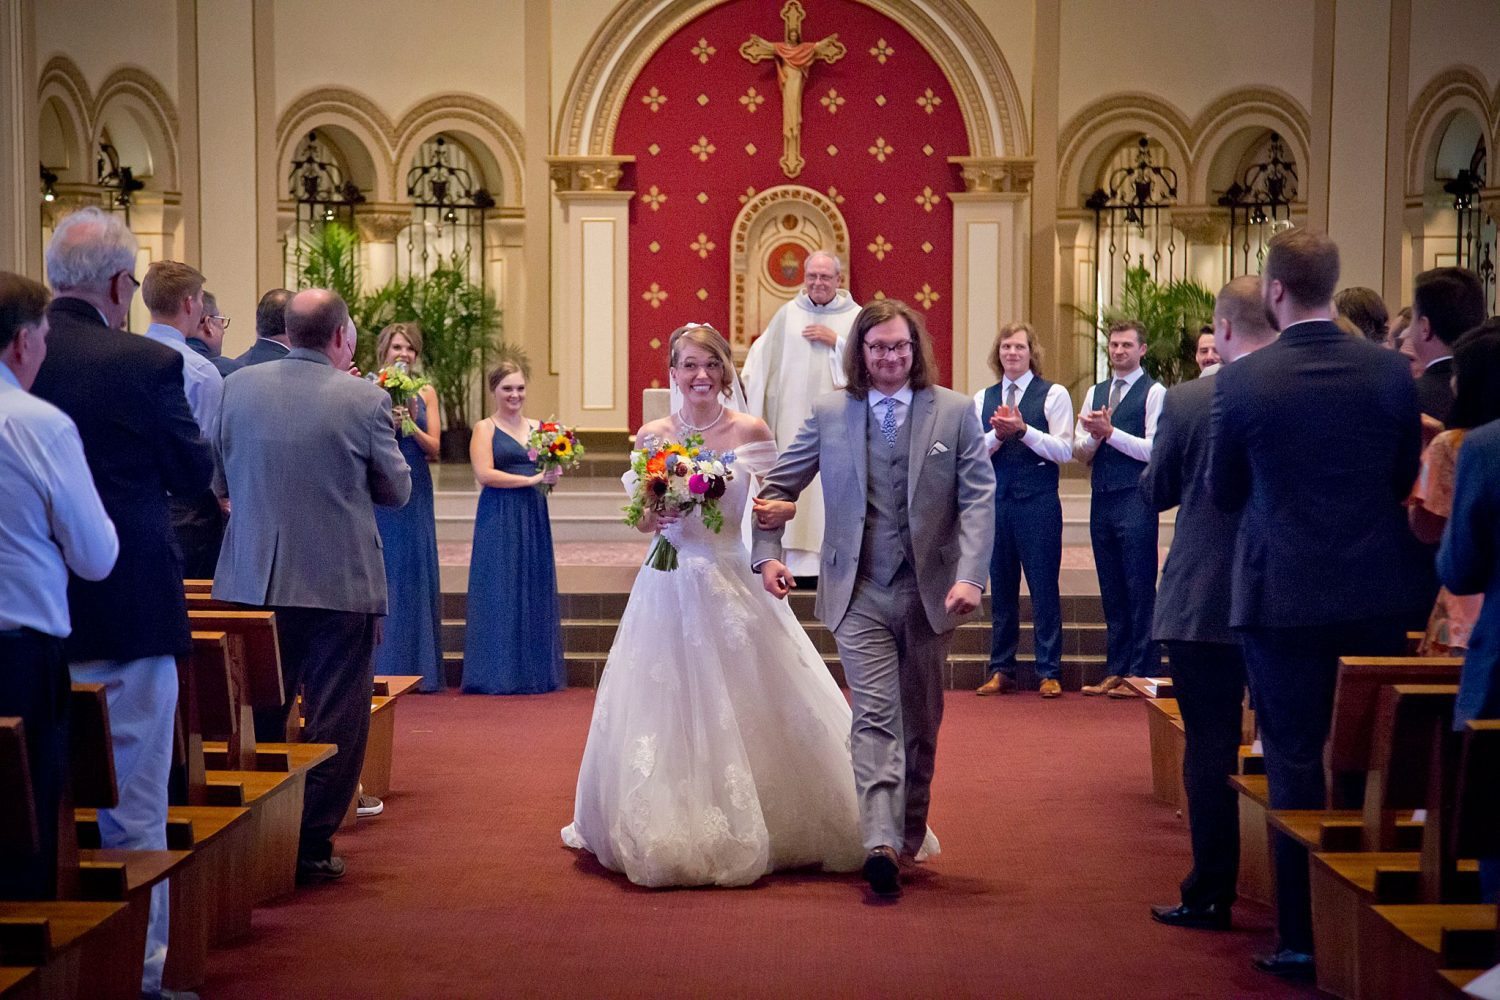 Wedding ceremony at St Ambrose Cathedral in Des Moines.